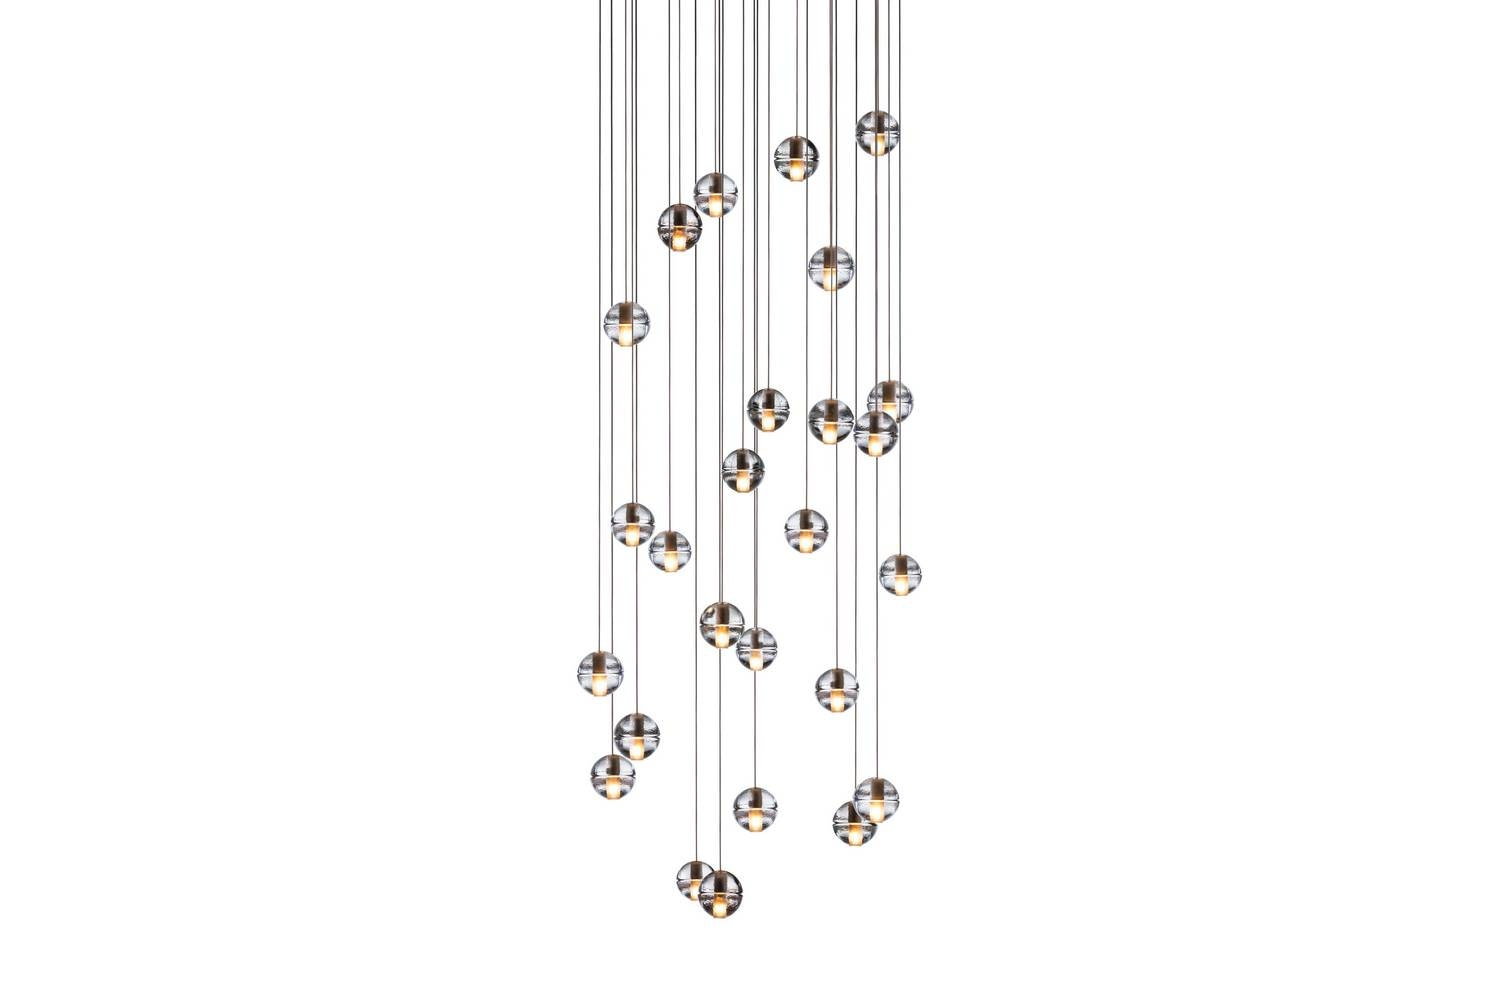 14.26 Standard Suspension Lamp by Omer Arbel for Bocci